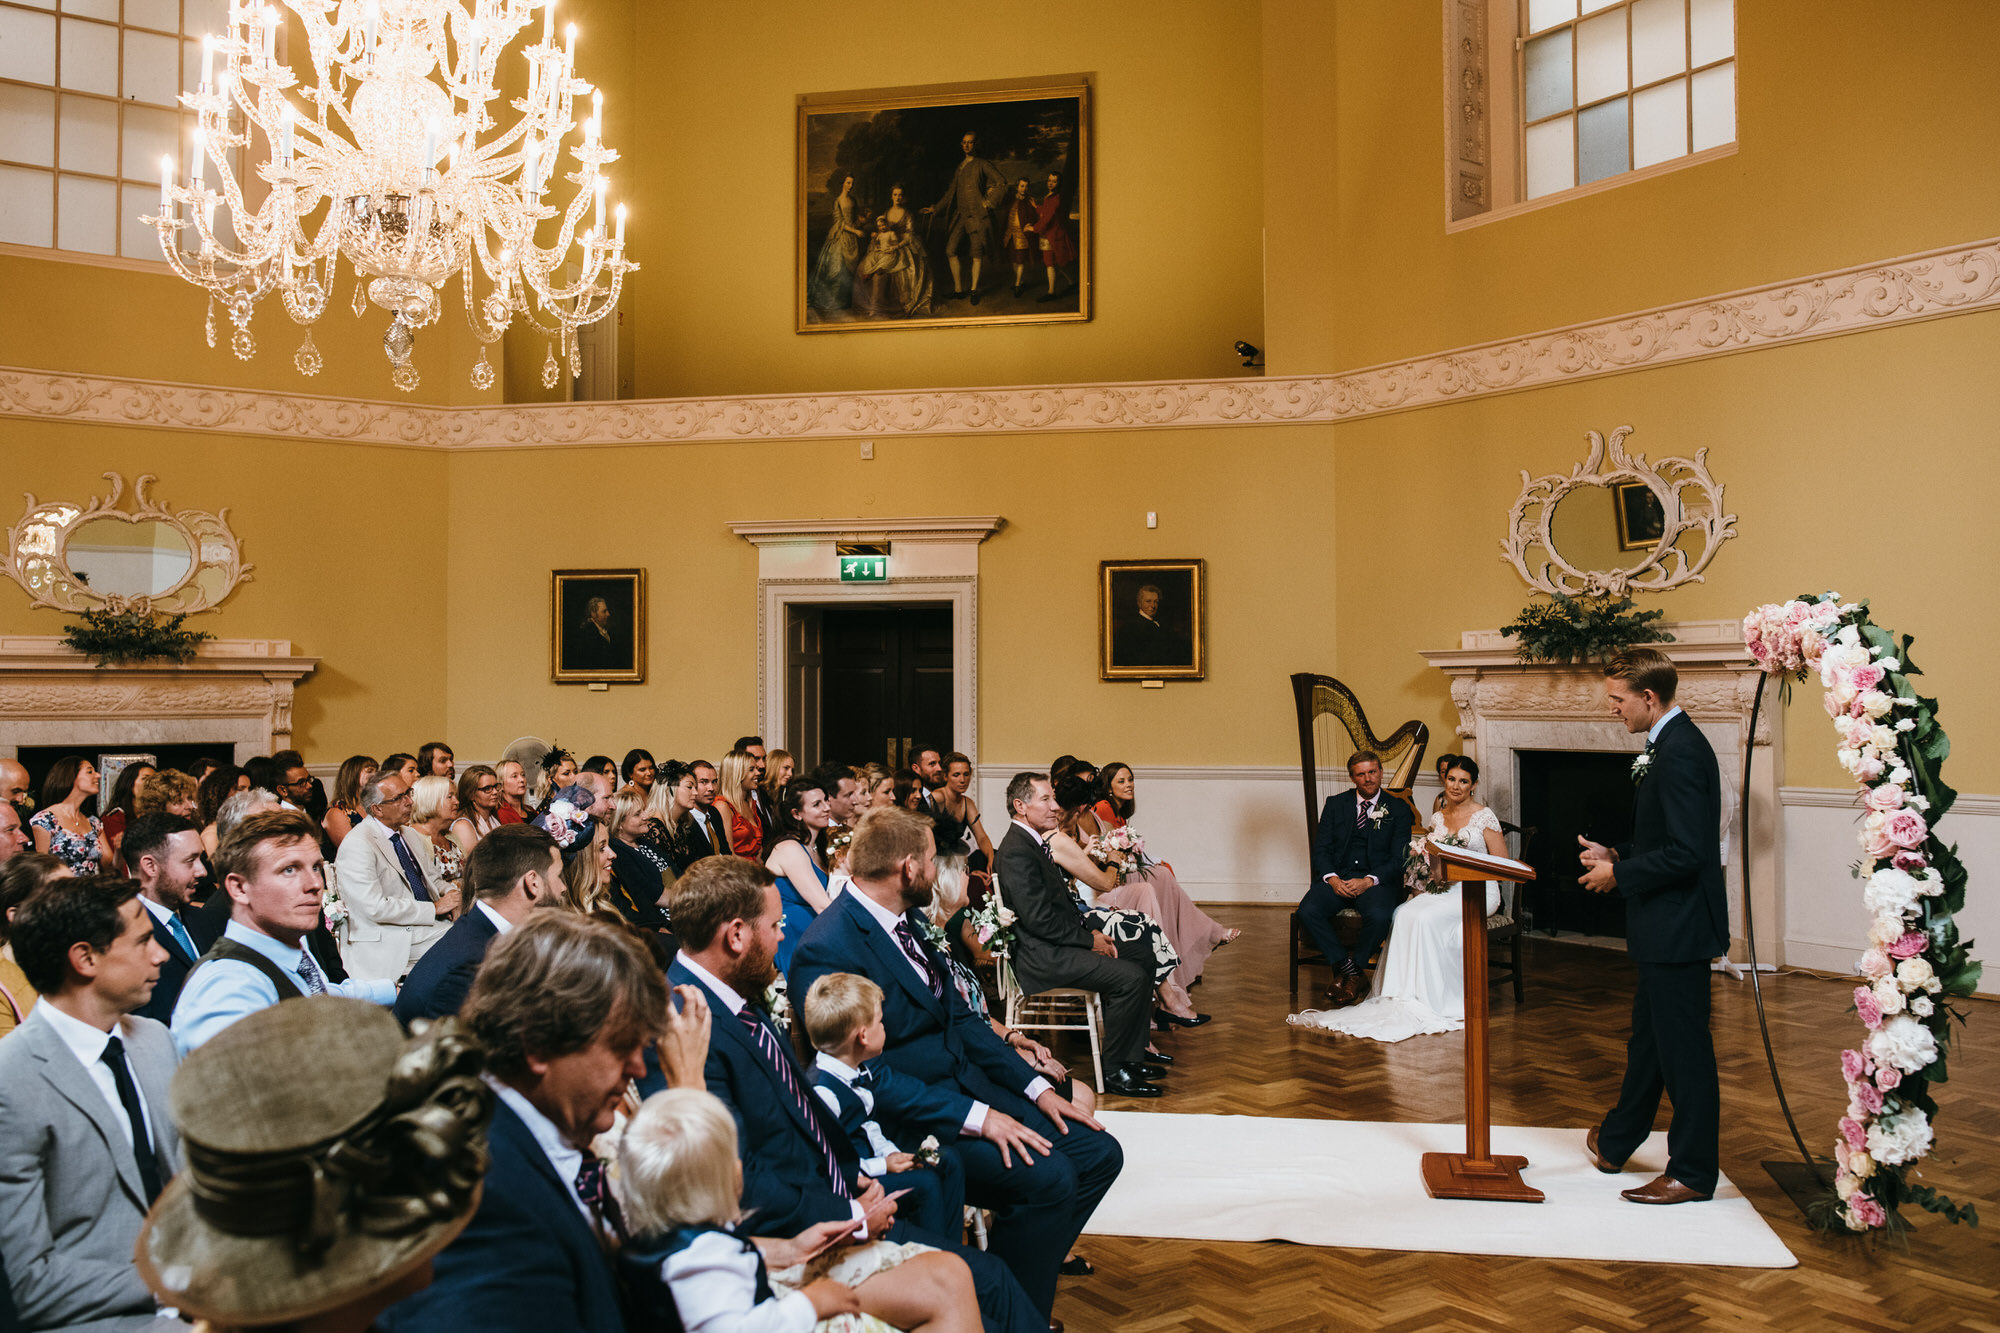 Assembly rooms bath wedding venue simon biffen photography 2